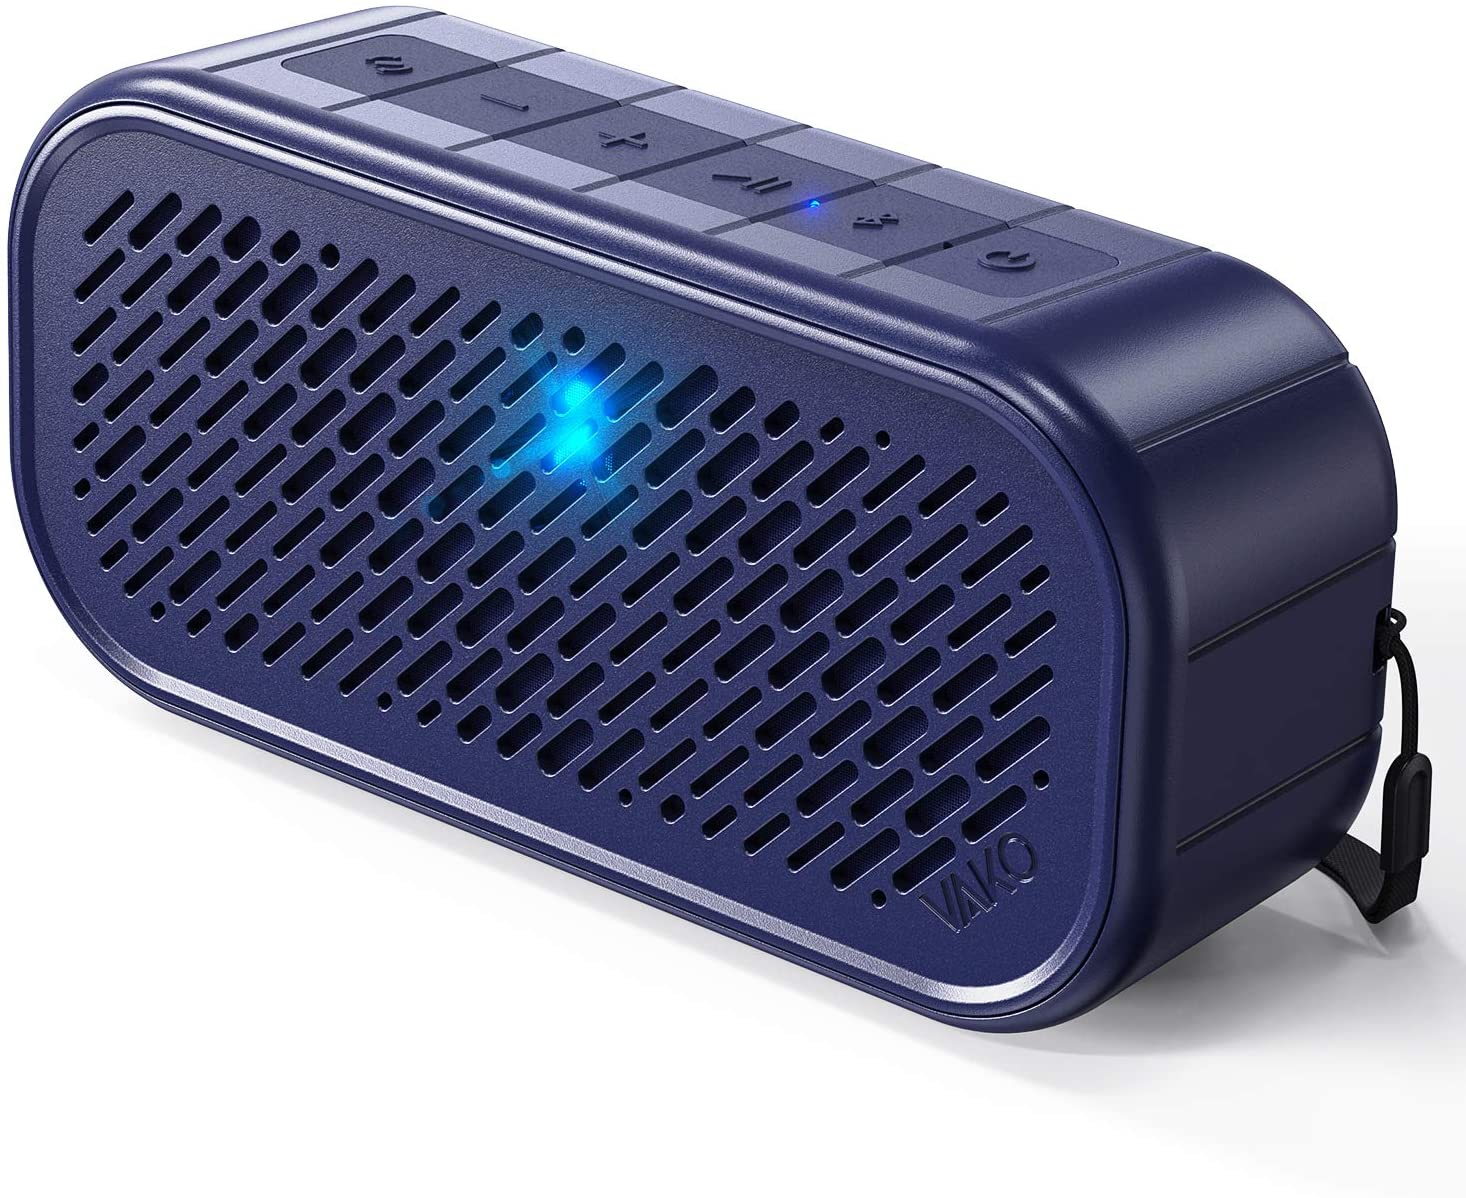 Wireless Bluetooth Speaker, VaKo RockSound Portable Small Speakers IPX5 Waterproof for Shower, Outdoor, Travel, Interested Sound Effects Made by Tapping or Shaking, for Party, Camping, Bluetooth 5.0